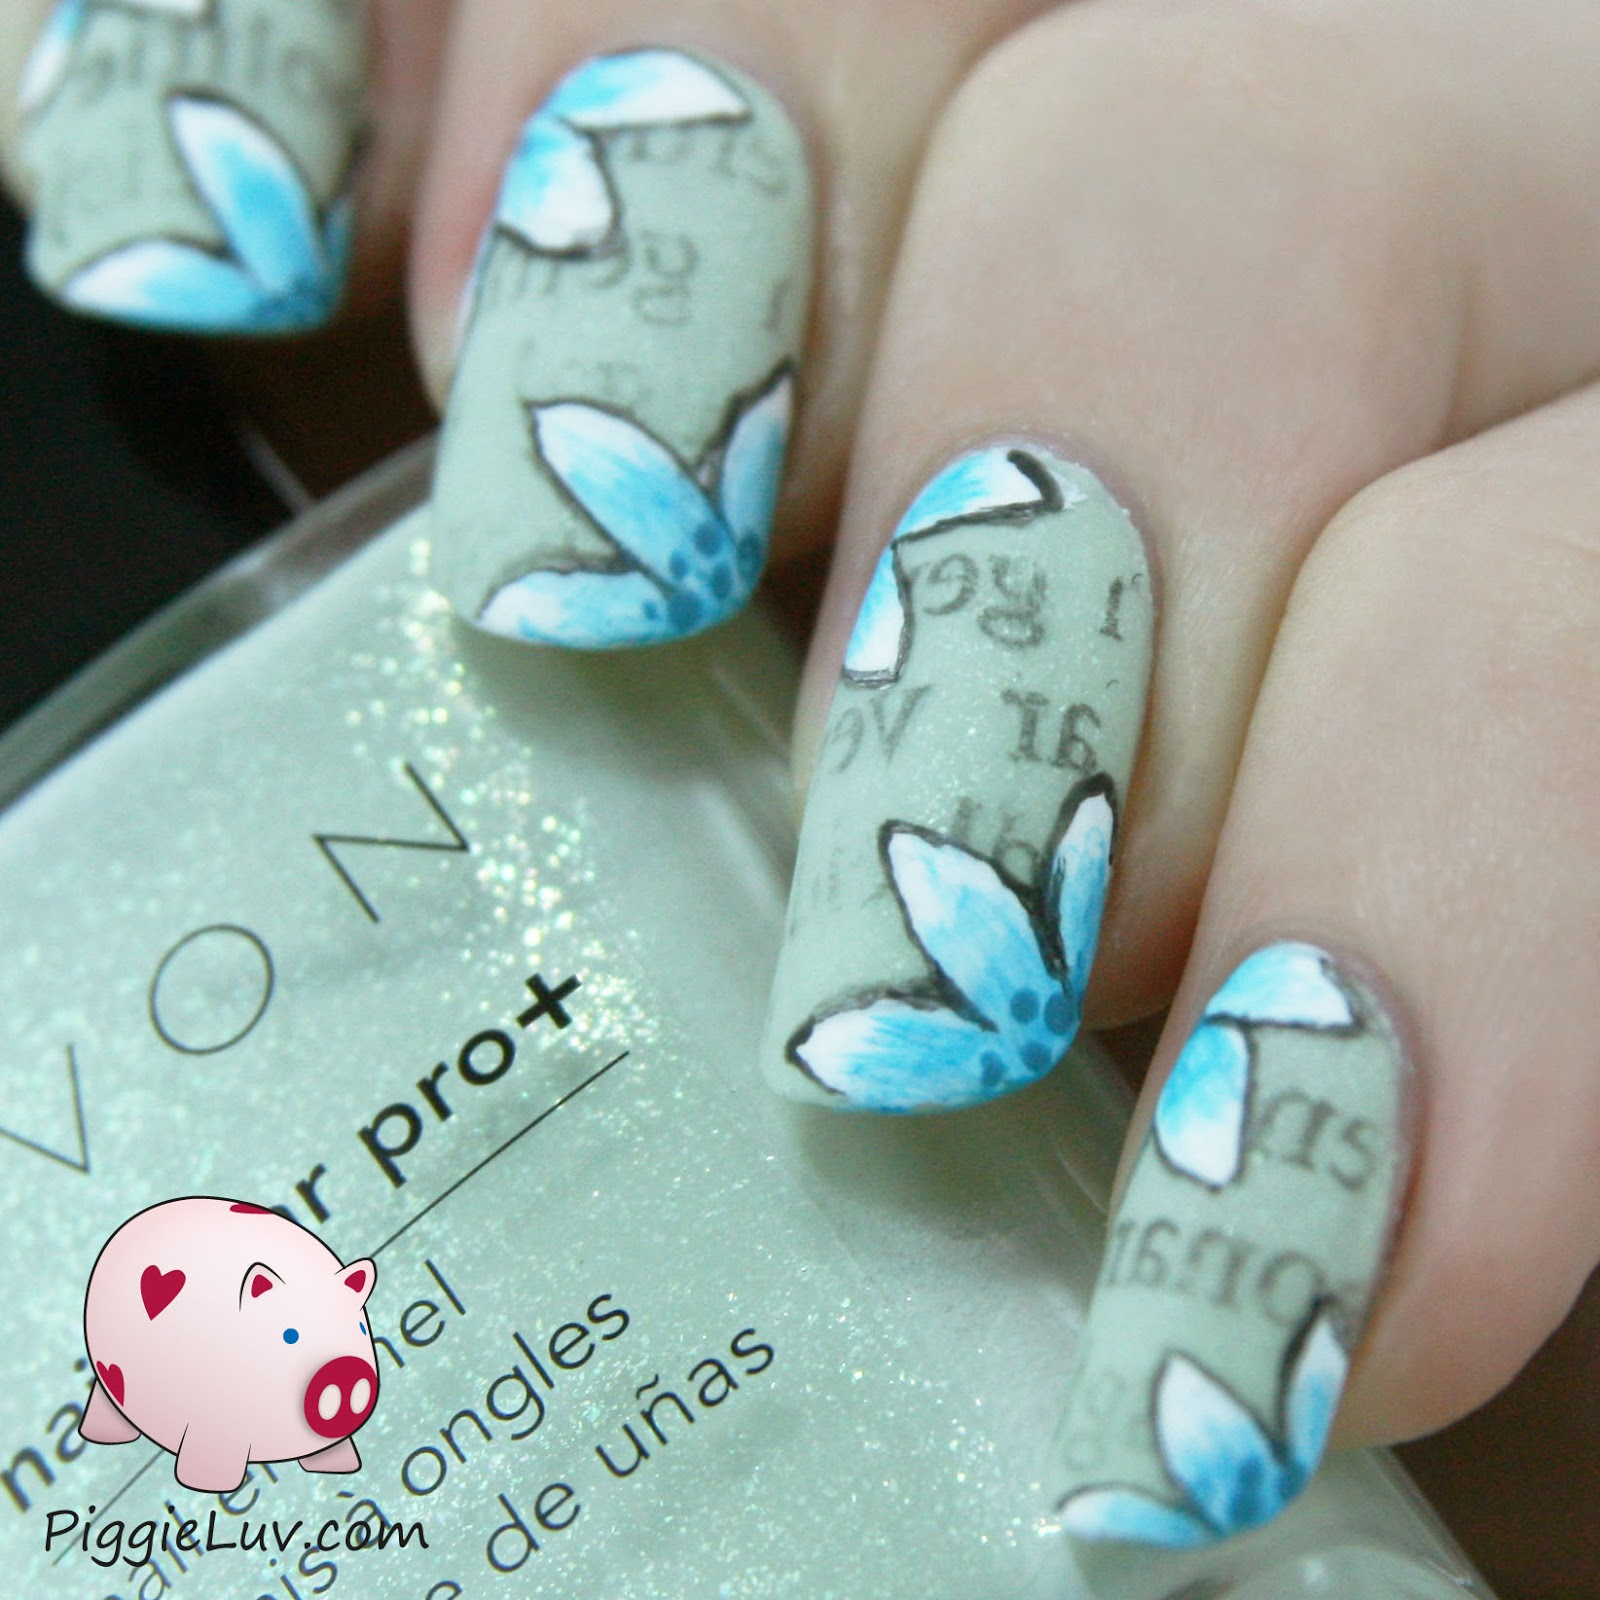 PiggieLuv: Newspaper nail art with florals